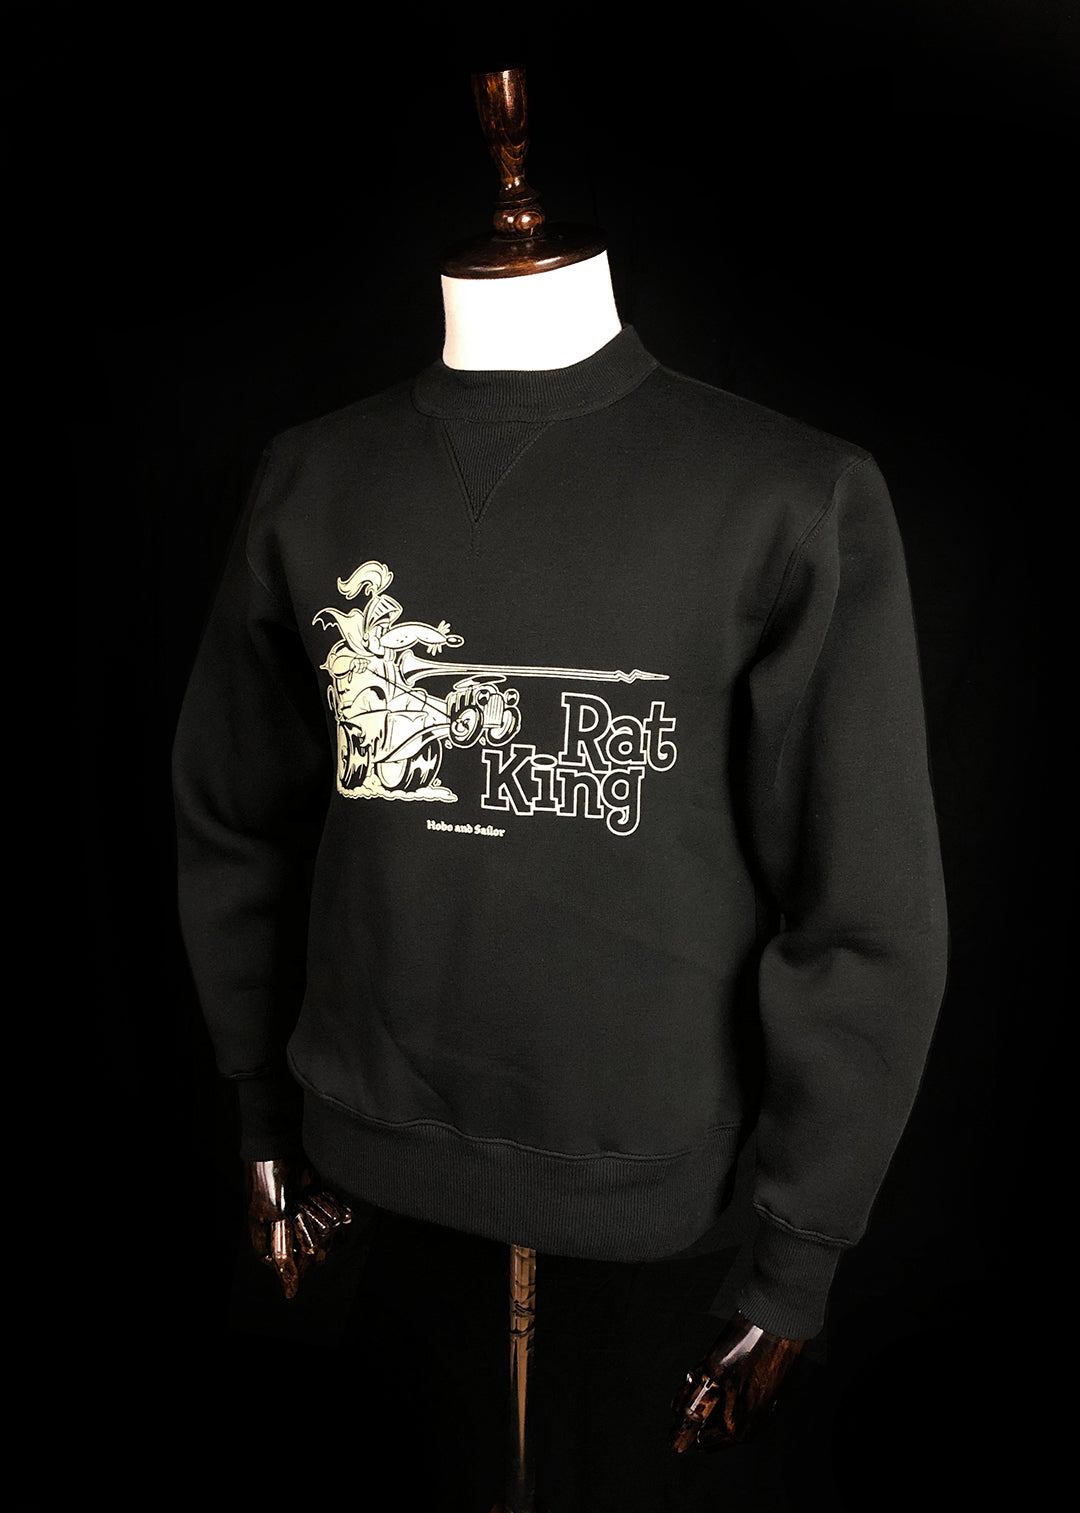 Sweatshirt. Rat King